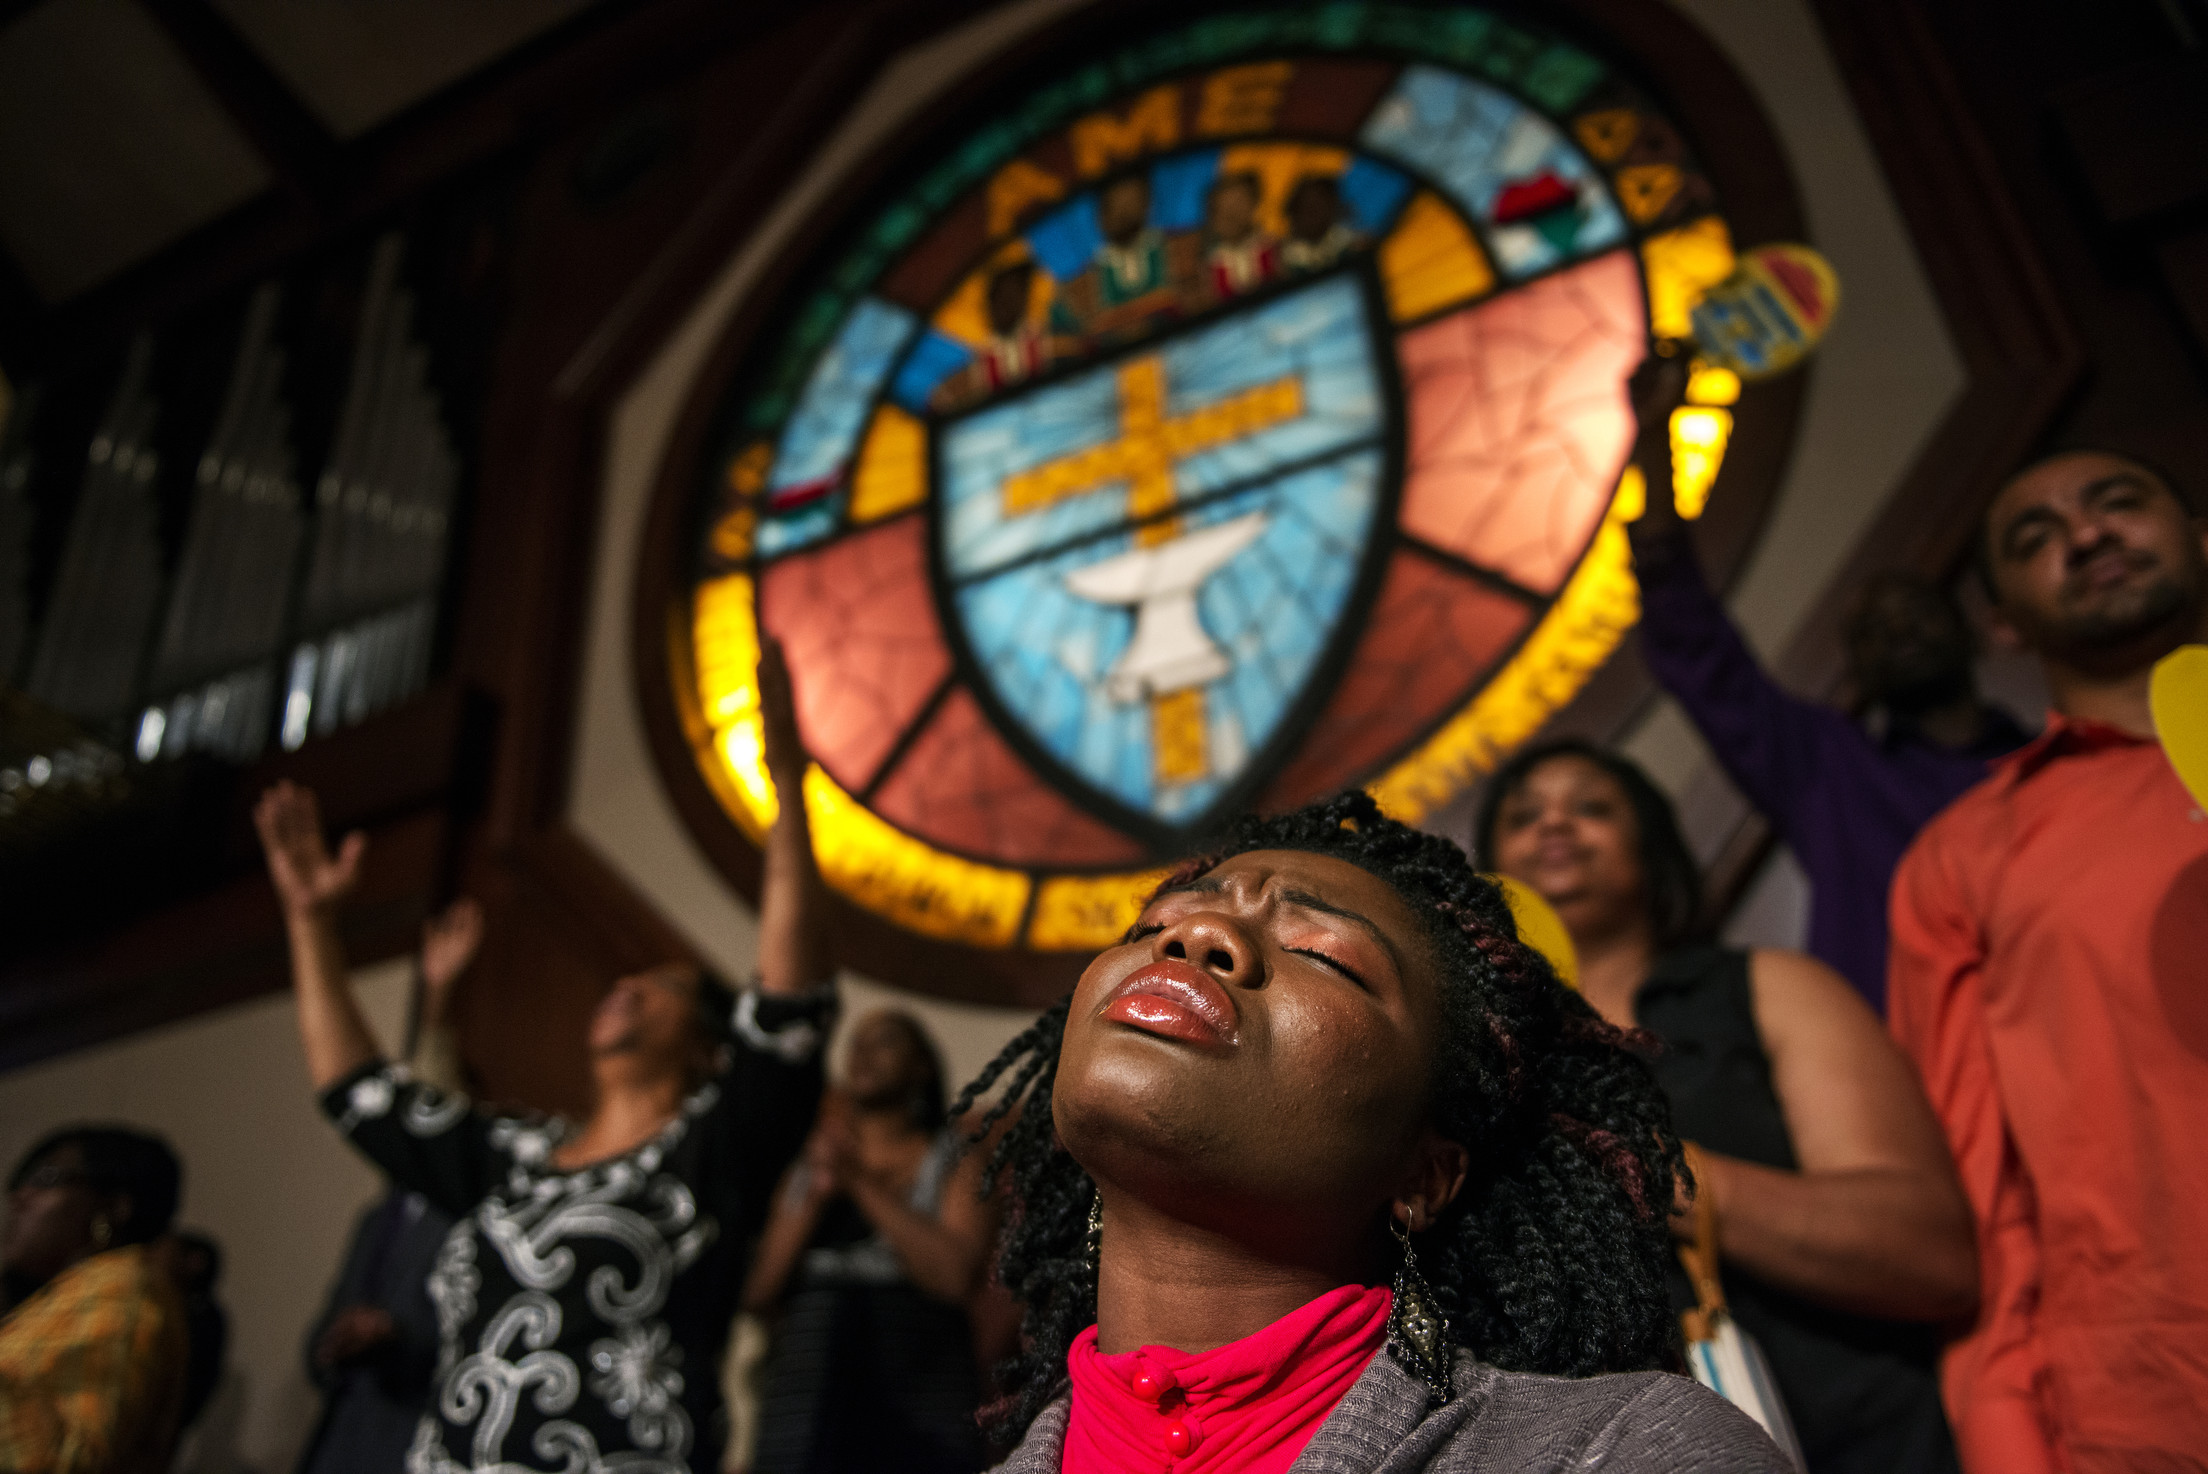 FORT WASHINGTON, MD - MAY 09:  Rachel D. Kamasse sings along as John P. Kee and New Life perform while attending the McDonalds Gospel Tour on Thursday evening at Ebenezer AME Church in Fort Washington, MD. (Photo by Amanda Voisard/For the Washington Post)